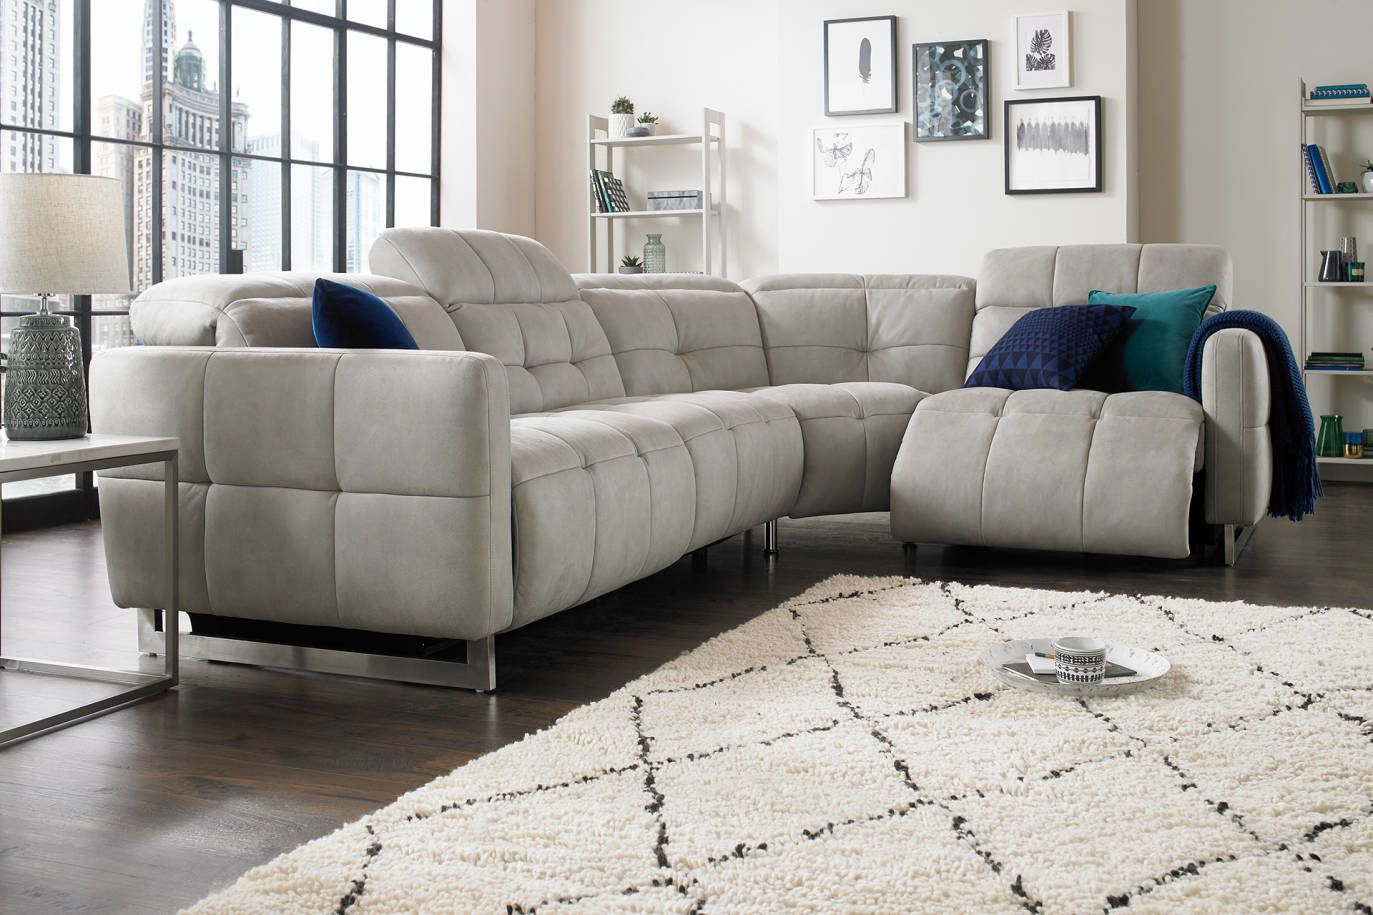 Marmont Sofology Classy Living Room Sofa Front Room